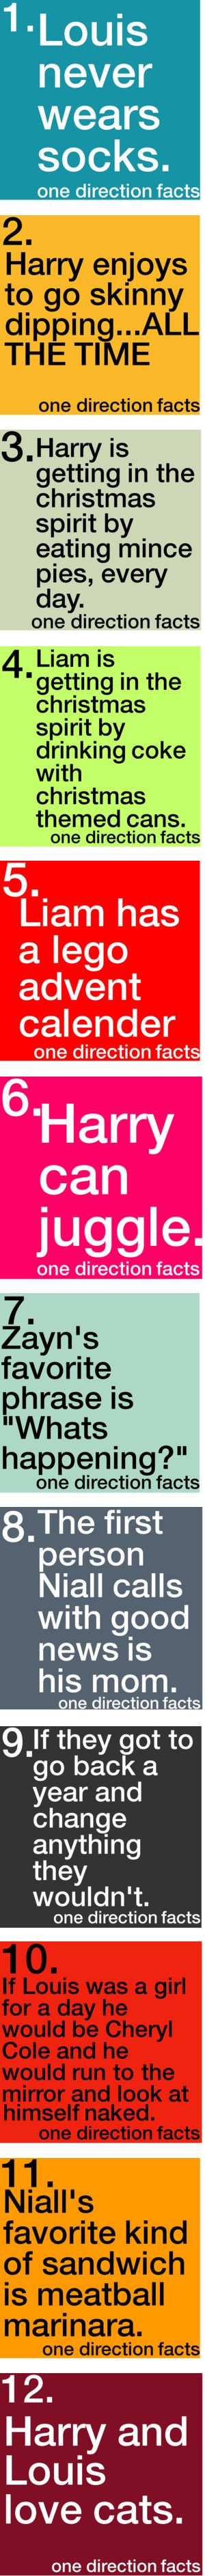 """""""One Direction Facts {part one}"""" by onedirectionfacts ❤ liked on Polyvore"""